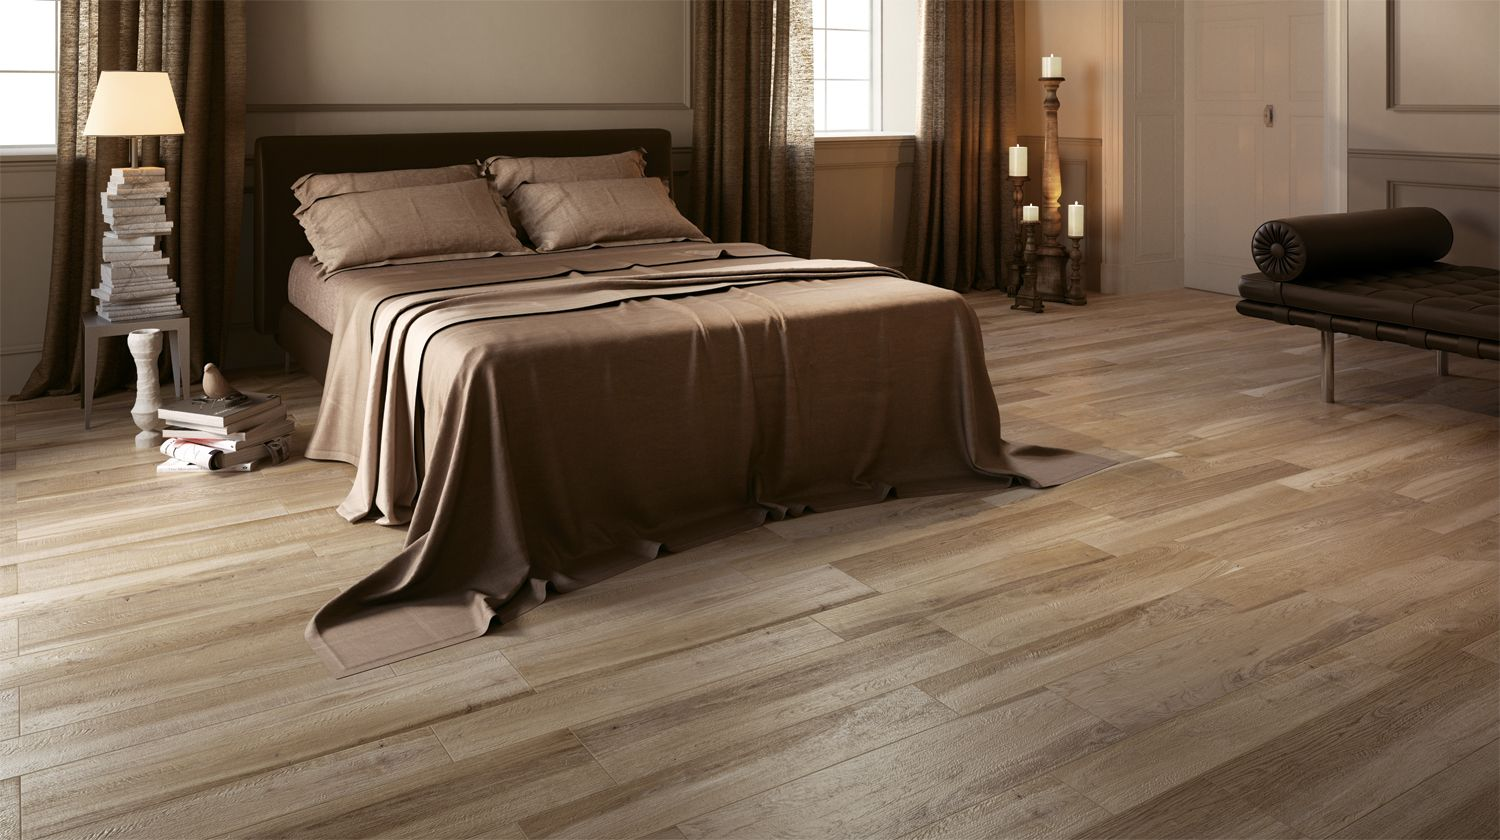 cheap wood look porcelain tile wb designs with porcelain wood tile. - Porcelain Wood Tile. Top Beachwood Porcelain Plank Tile A Dockside